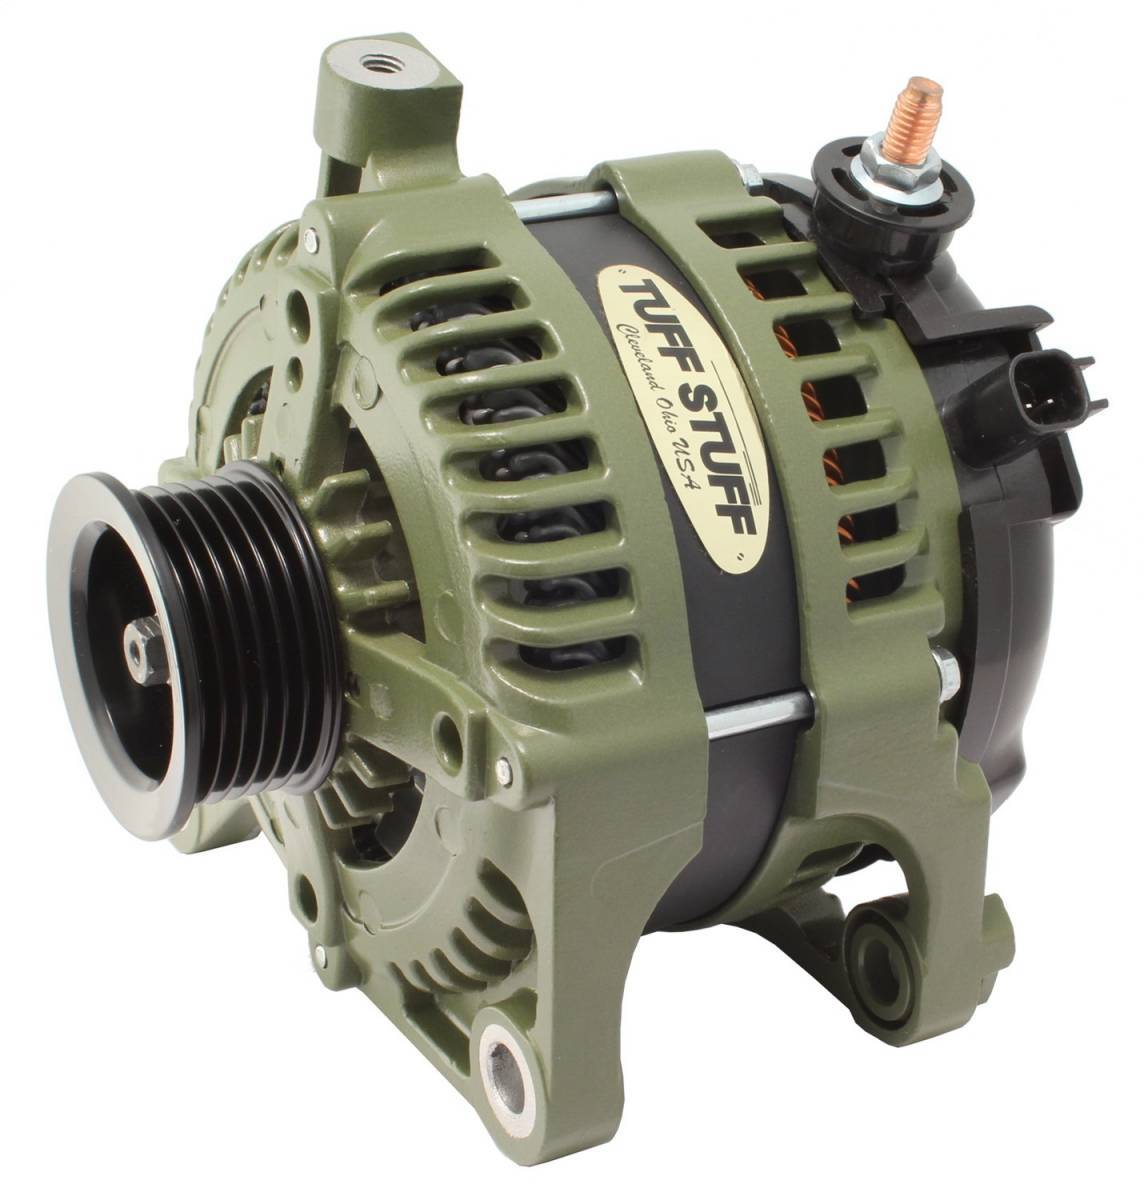 Tuff-Stuff 7515G Alternator, 250 amp, 12V, External Regulator, 6 Rib Serpentine Pulley, Army Green, Jeep Wrangler JK 2007-11, Each